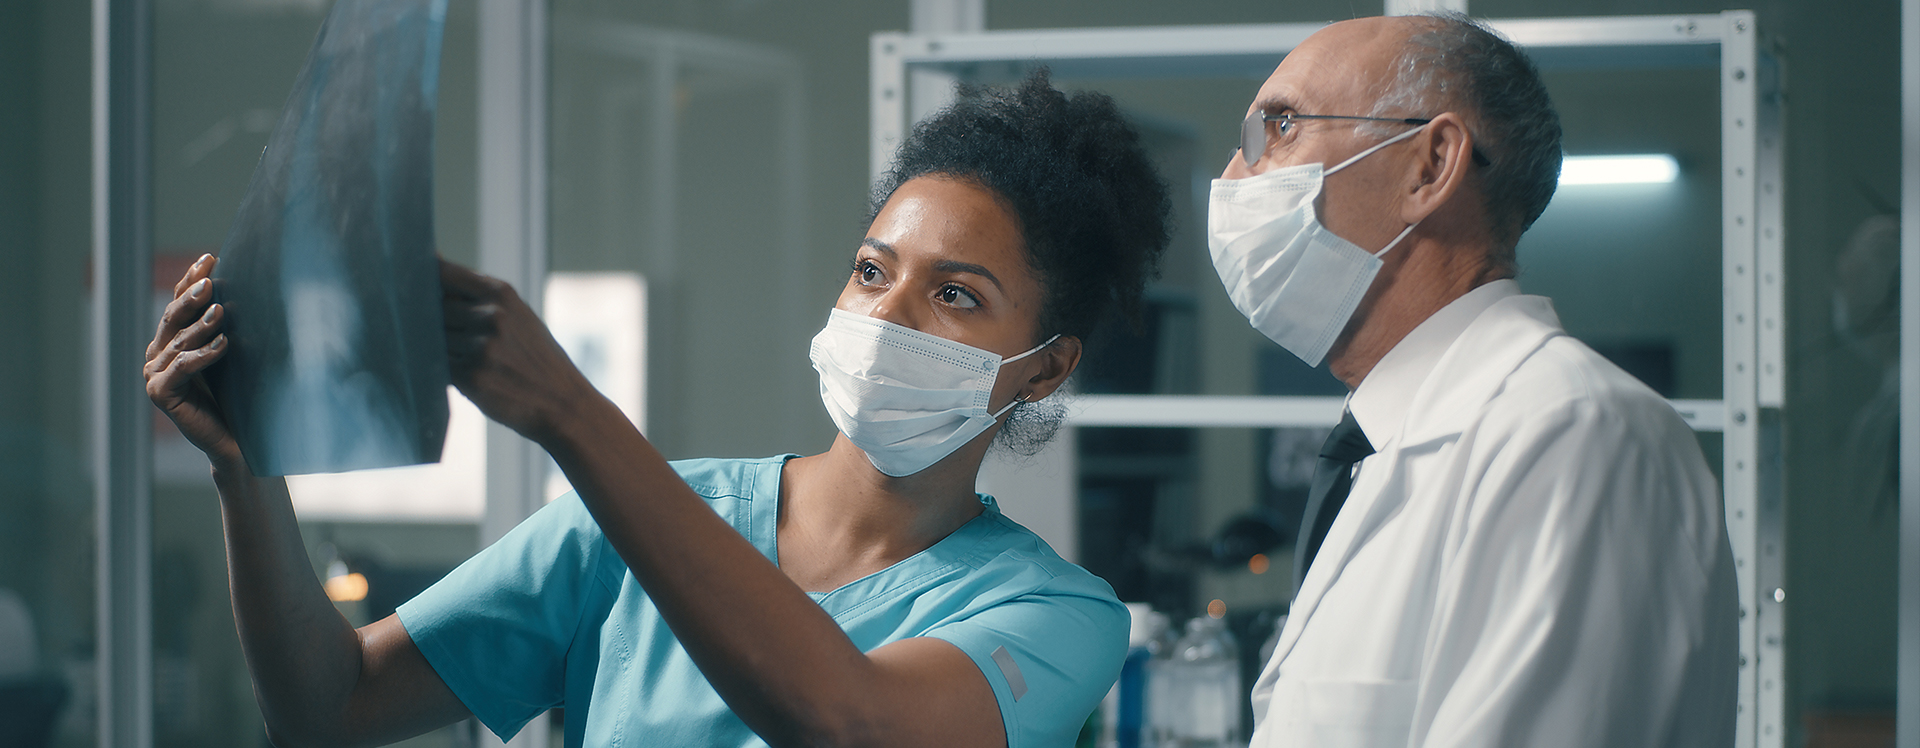 4 Reasons Why Transitioning from a Clinician Role to a Health Administration Role Could be Right for You